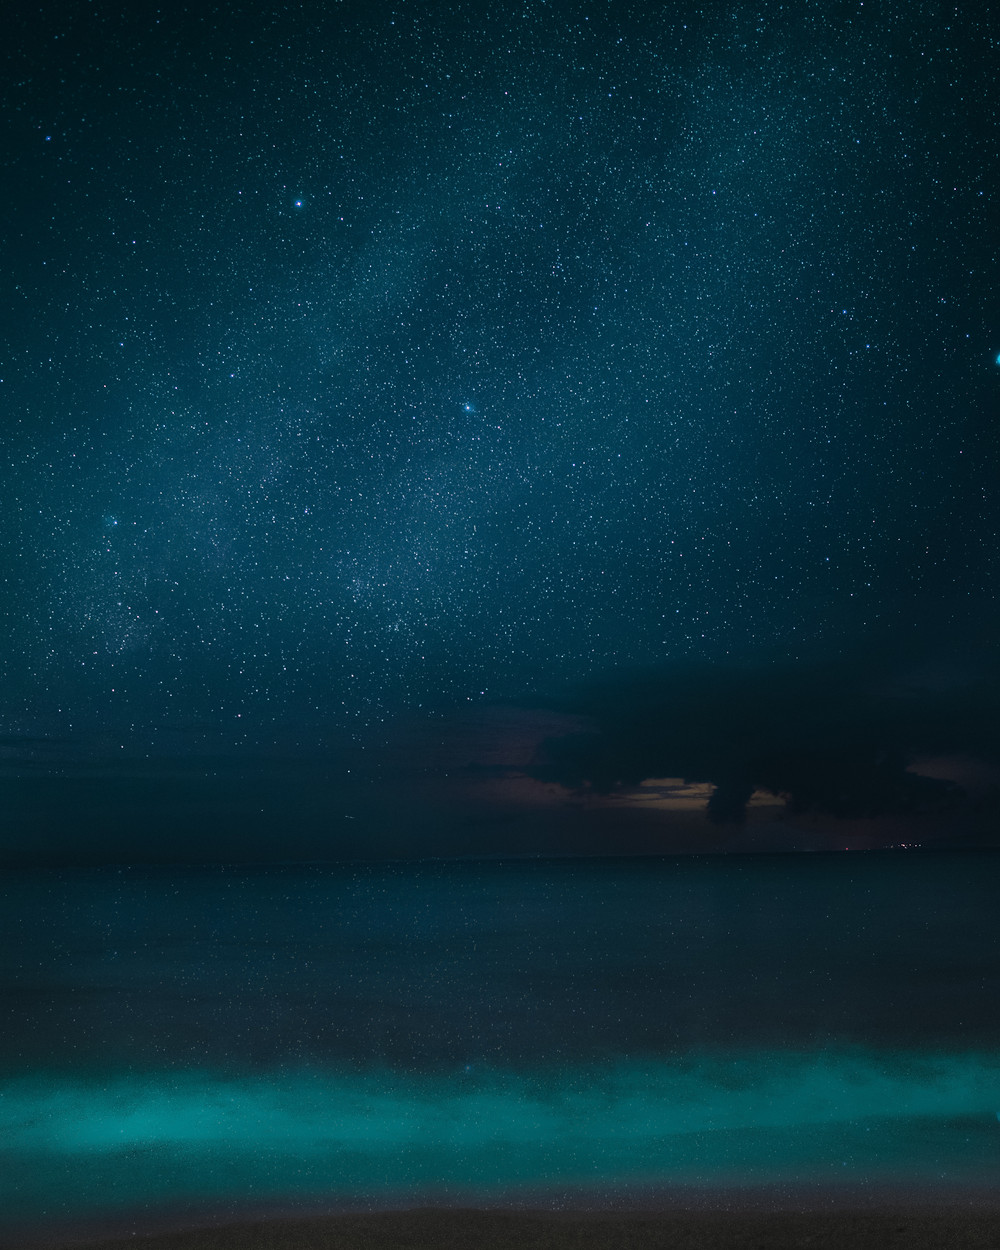 milky way and stars at a beach in Hawaii